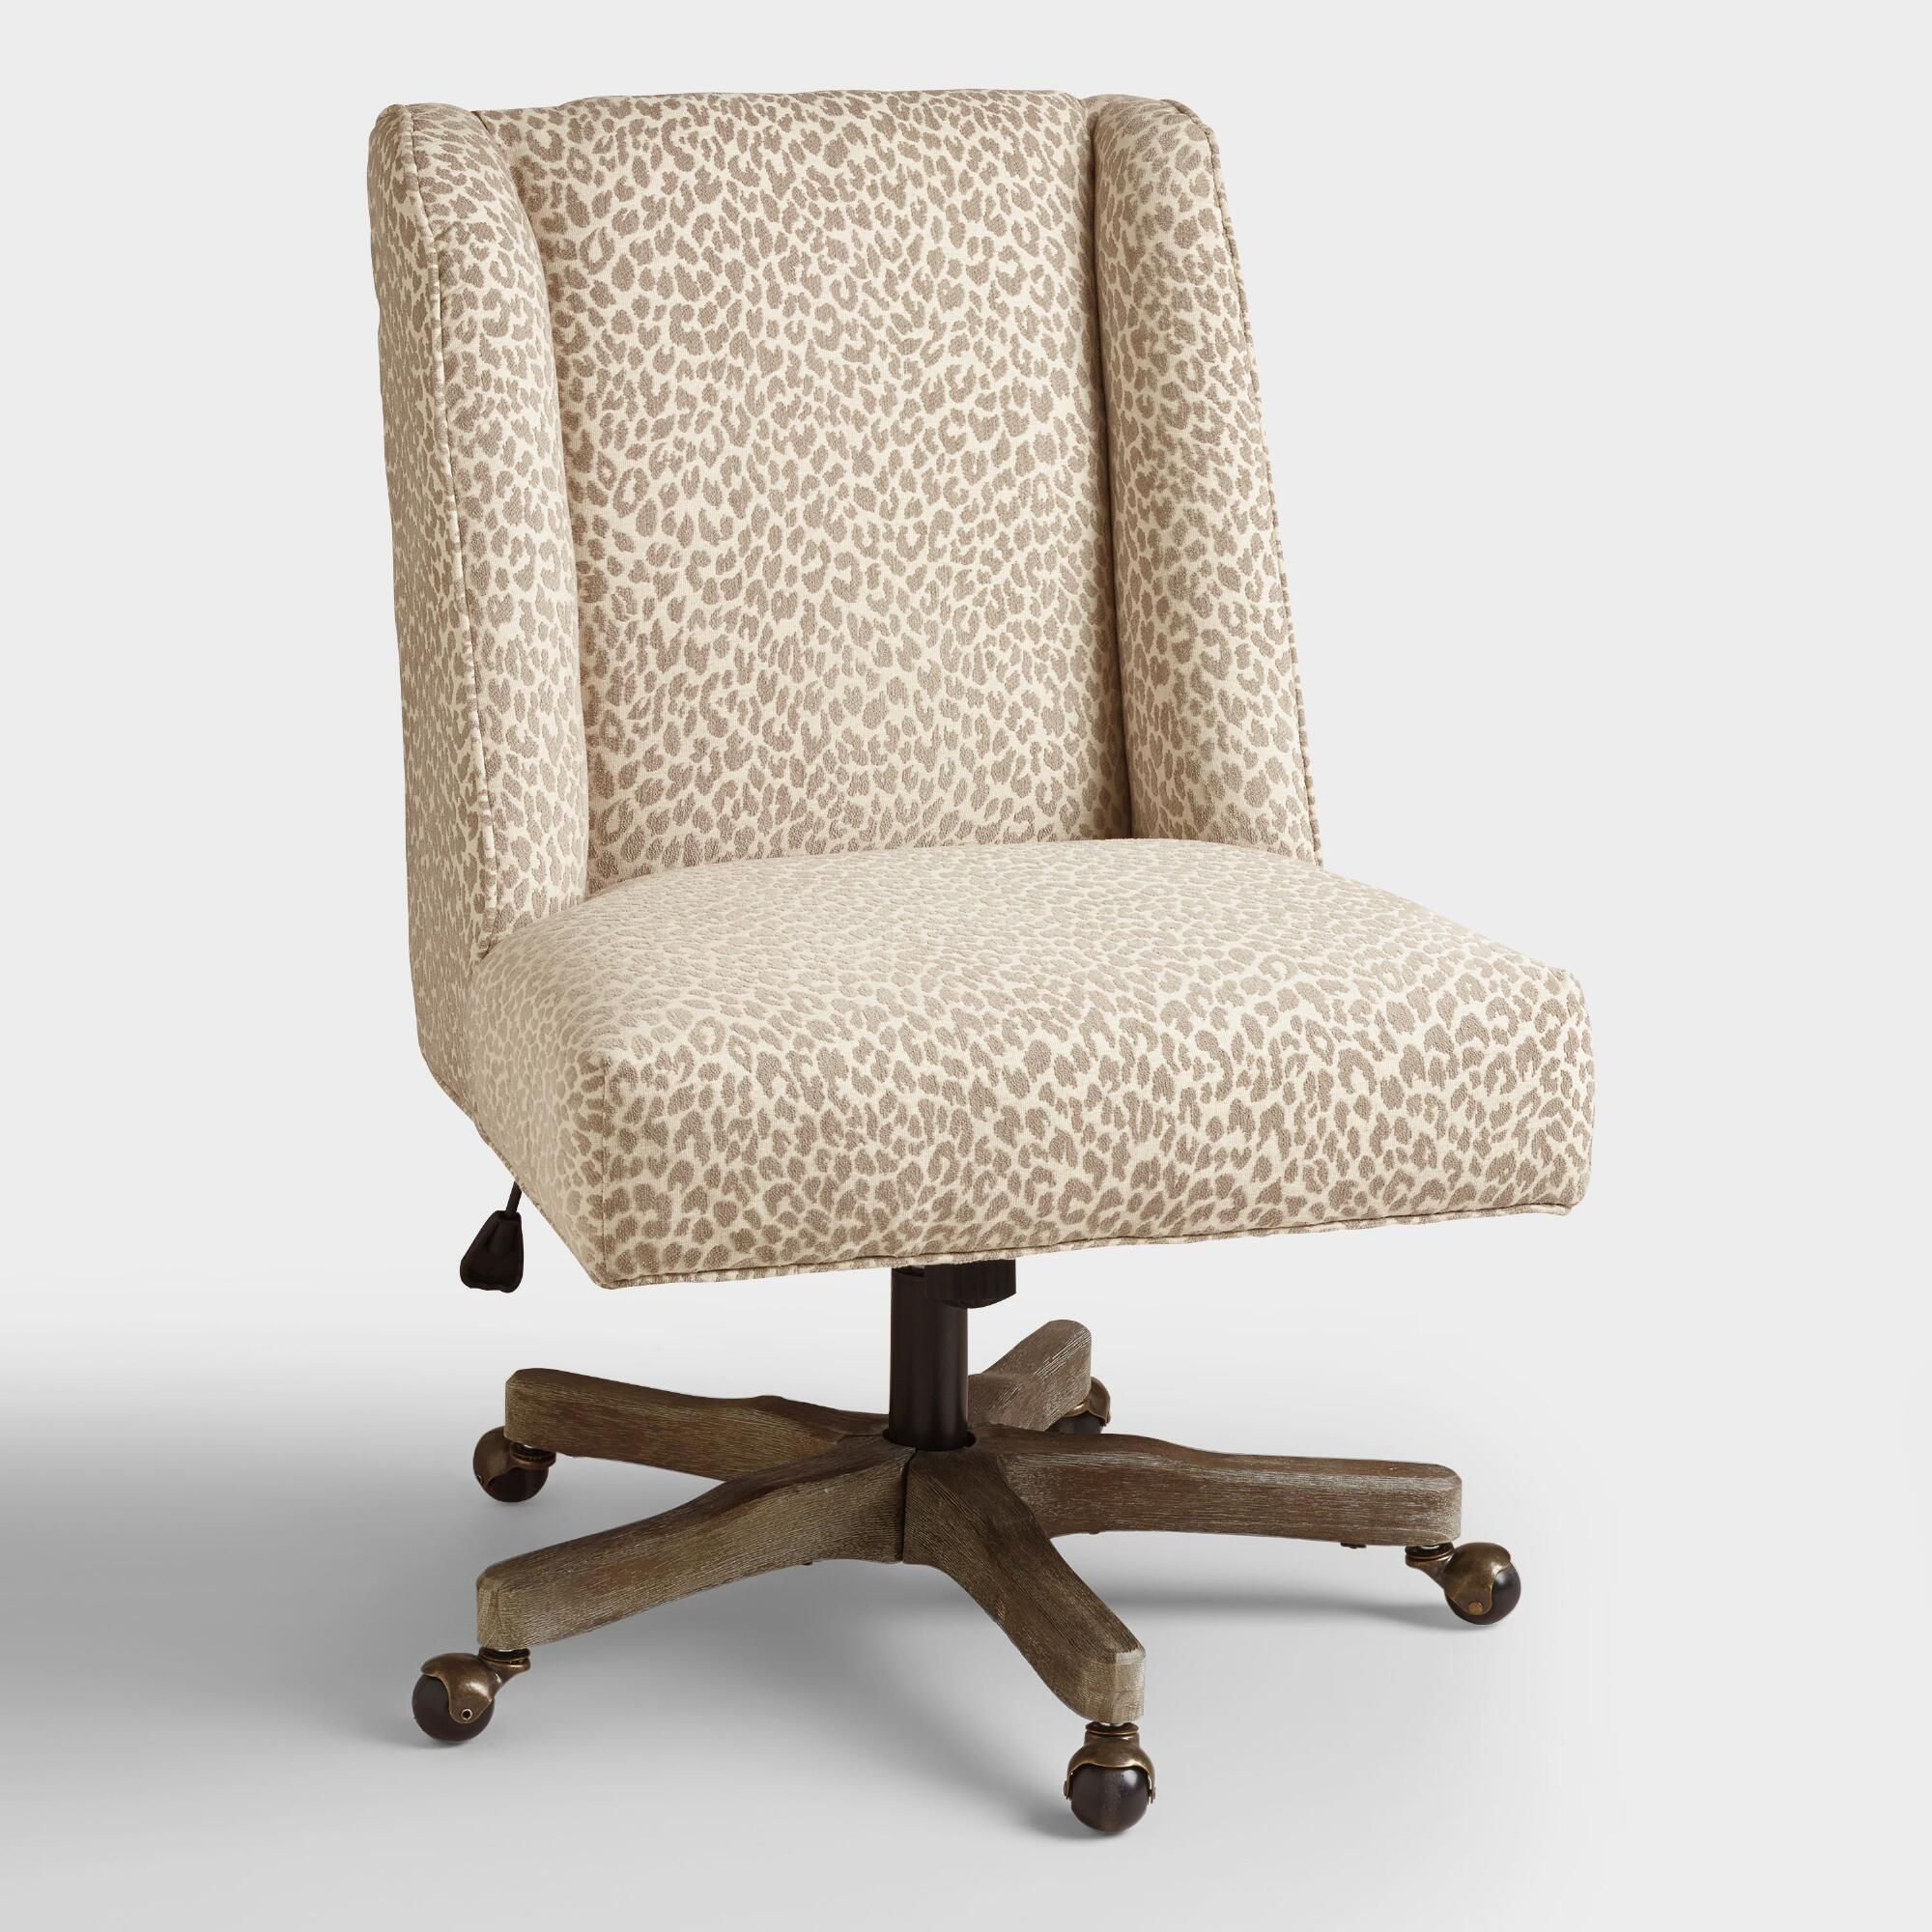 Mali Ava Upholstered Office Chair Upholstered Office Chair